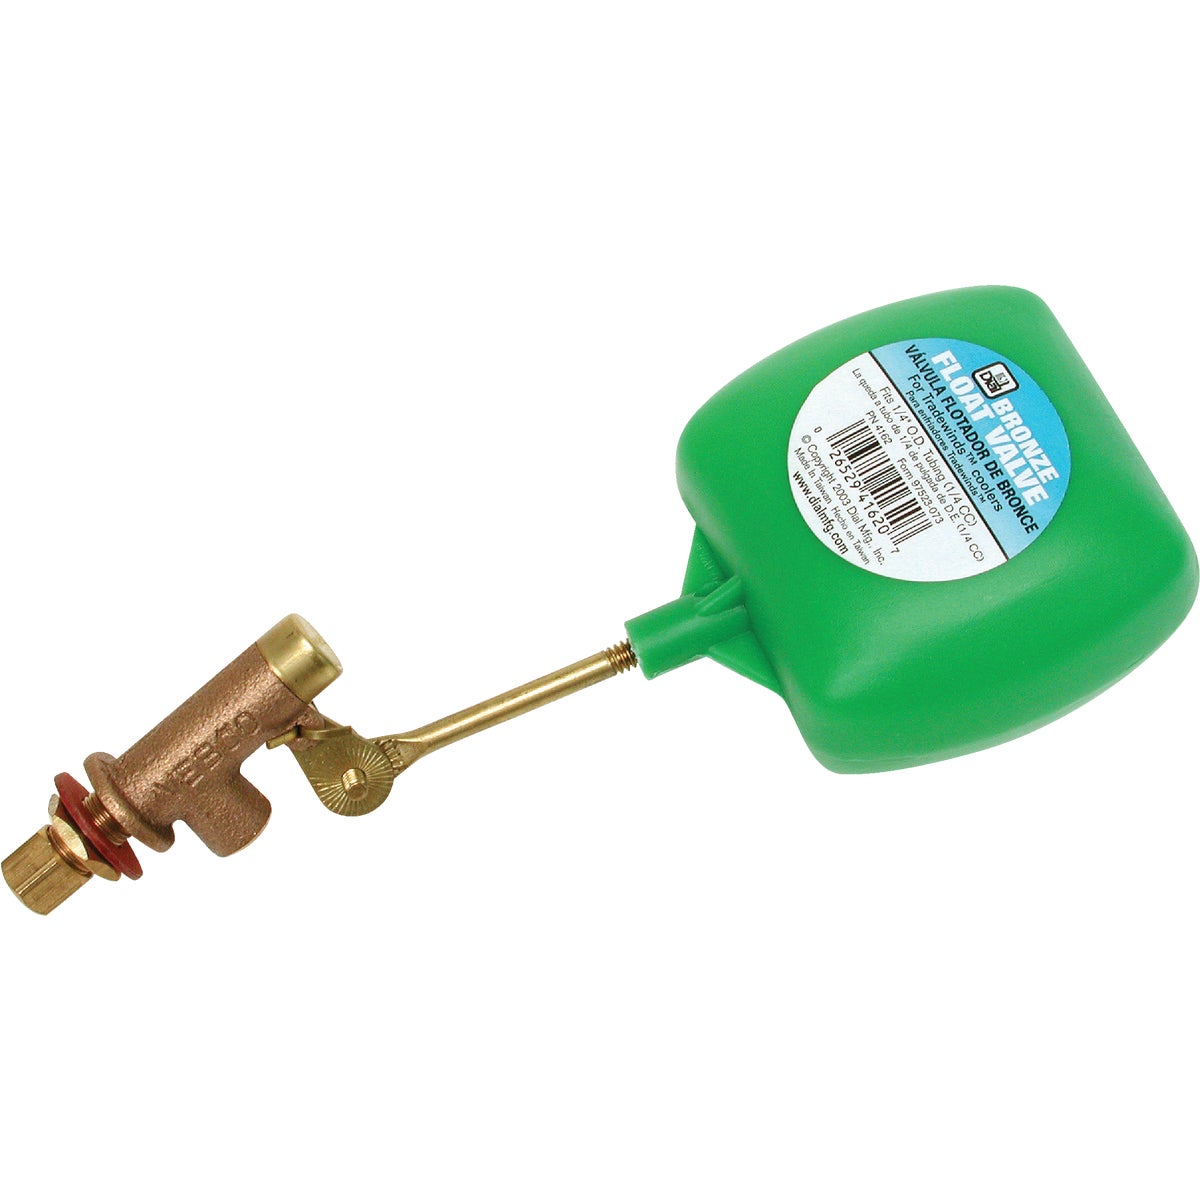 "1/4"" H/DUTY FLOAT VALVE - 4162 by Dial Manufacturing"